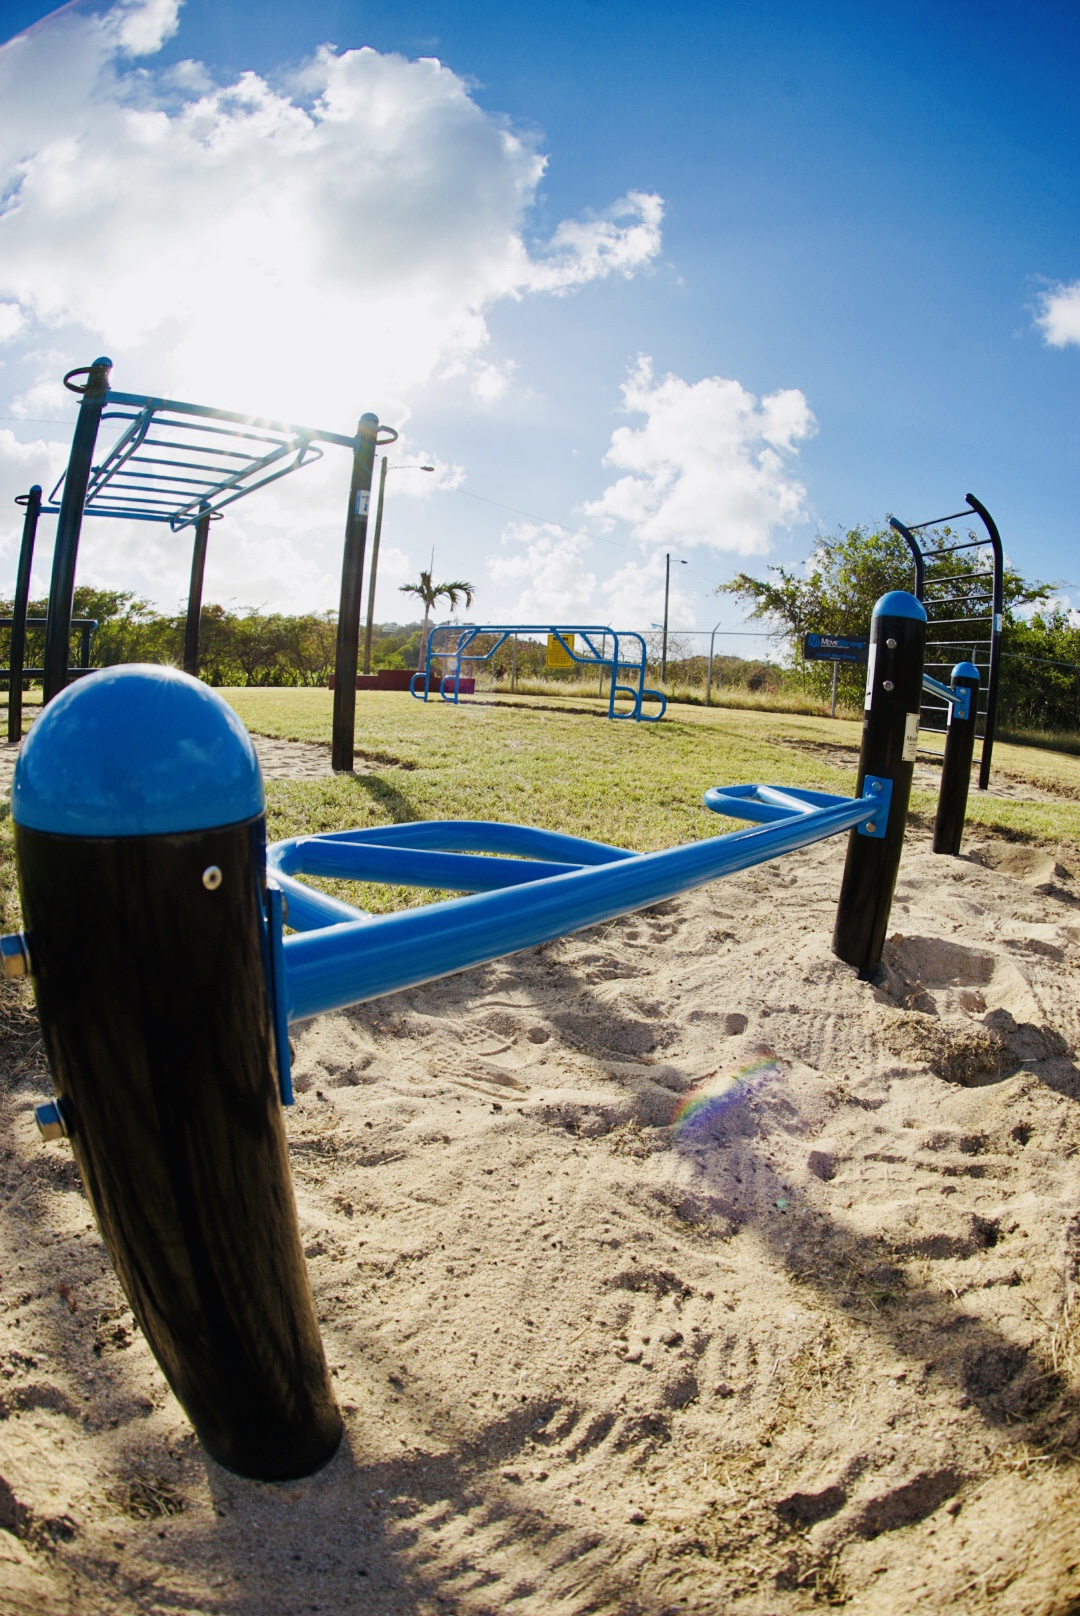 Push-up bars outdoor gym equipment